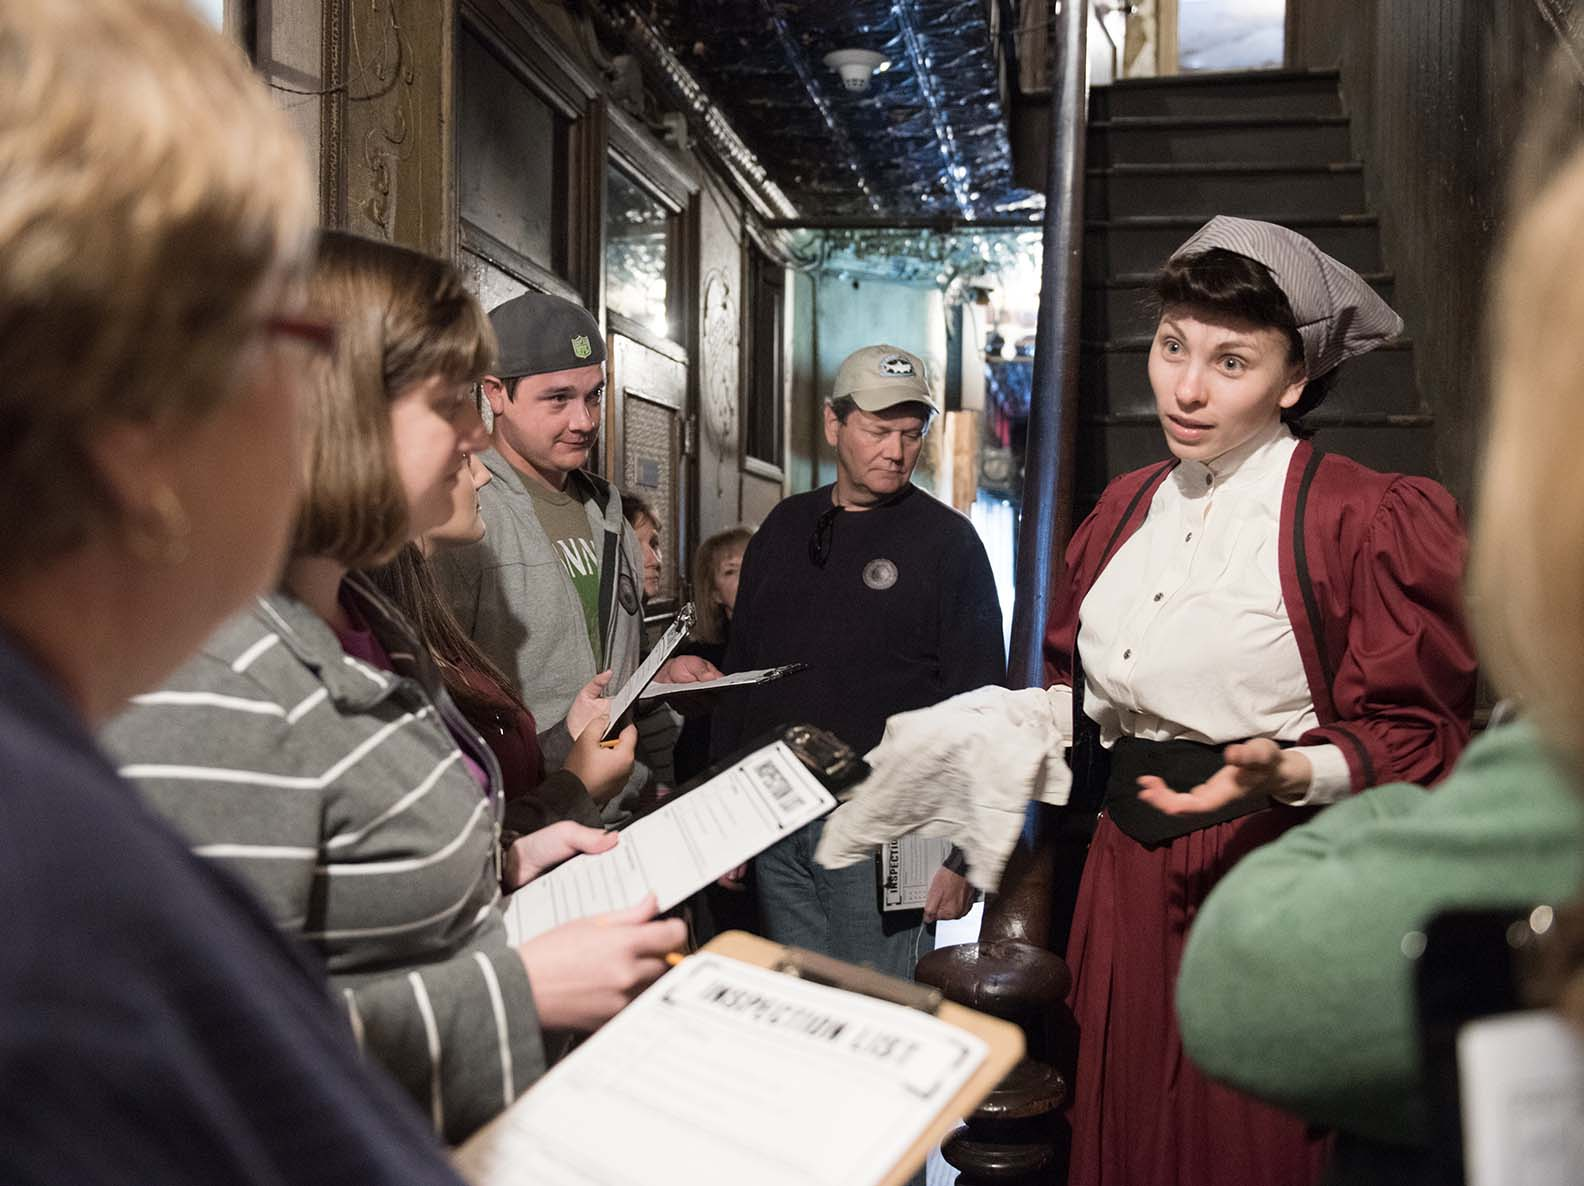 Museum visitors interacting with a costumed actor playing the role of a former 97 Orchard resident